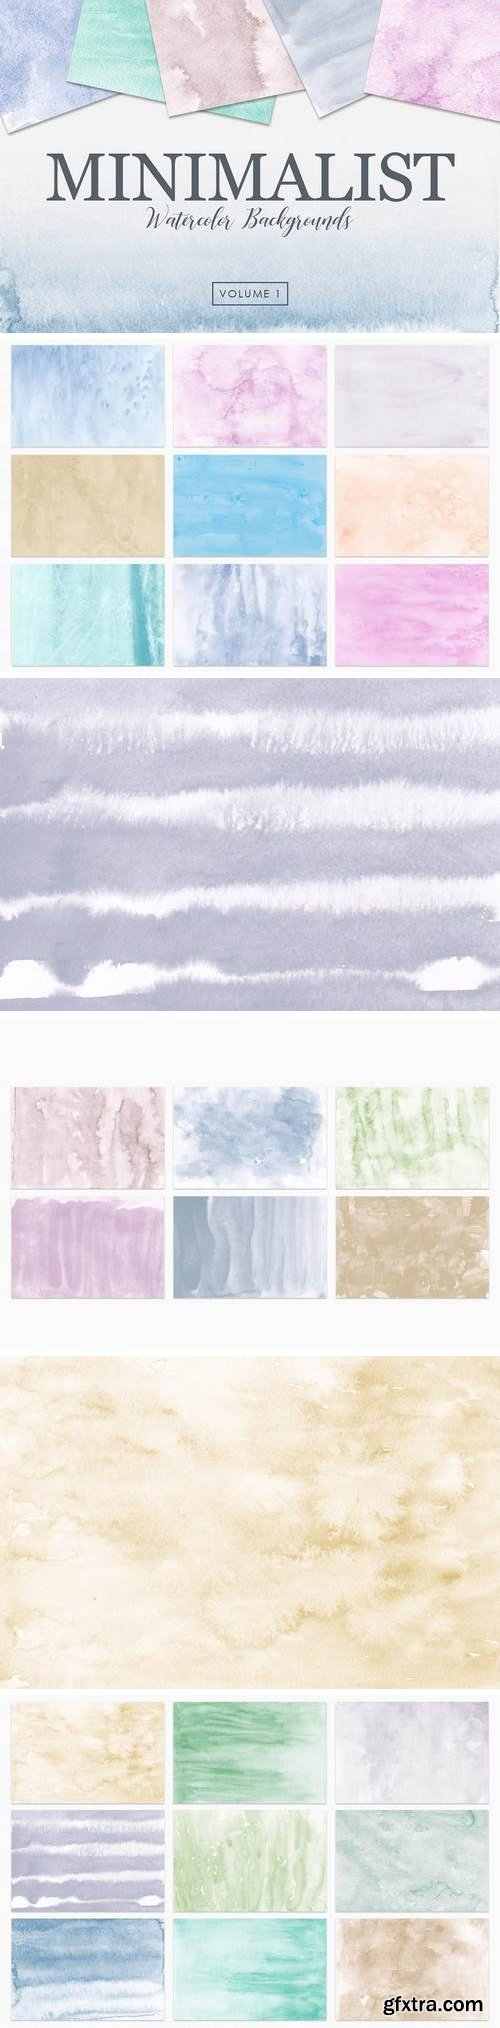 Minimalist Watercolor Backgrounds Vol. 1